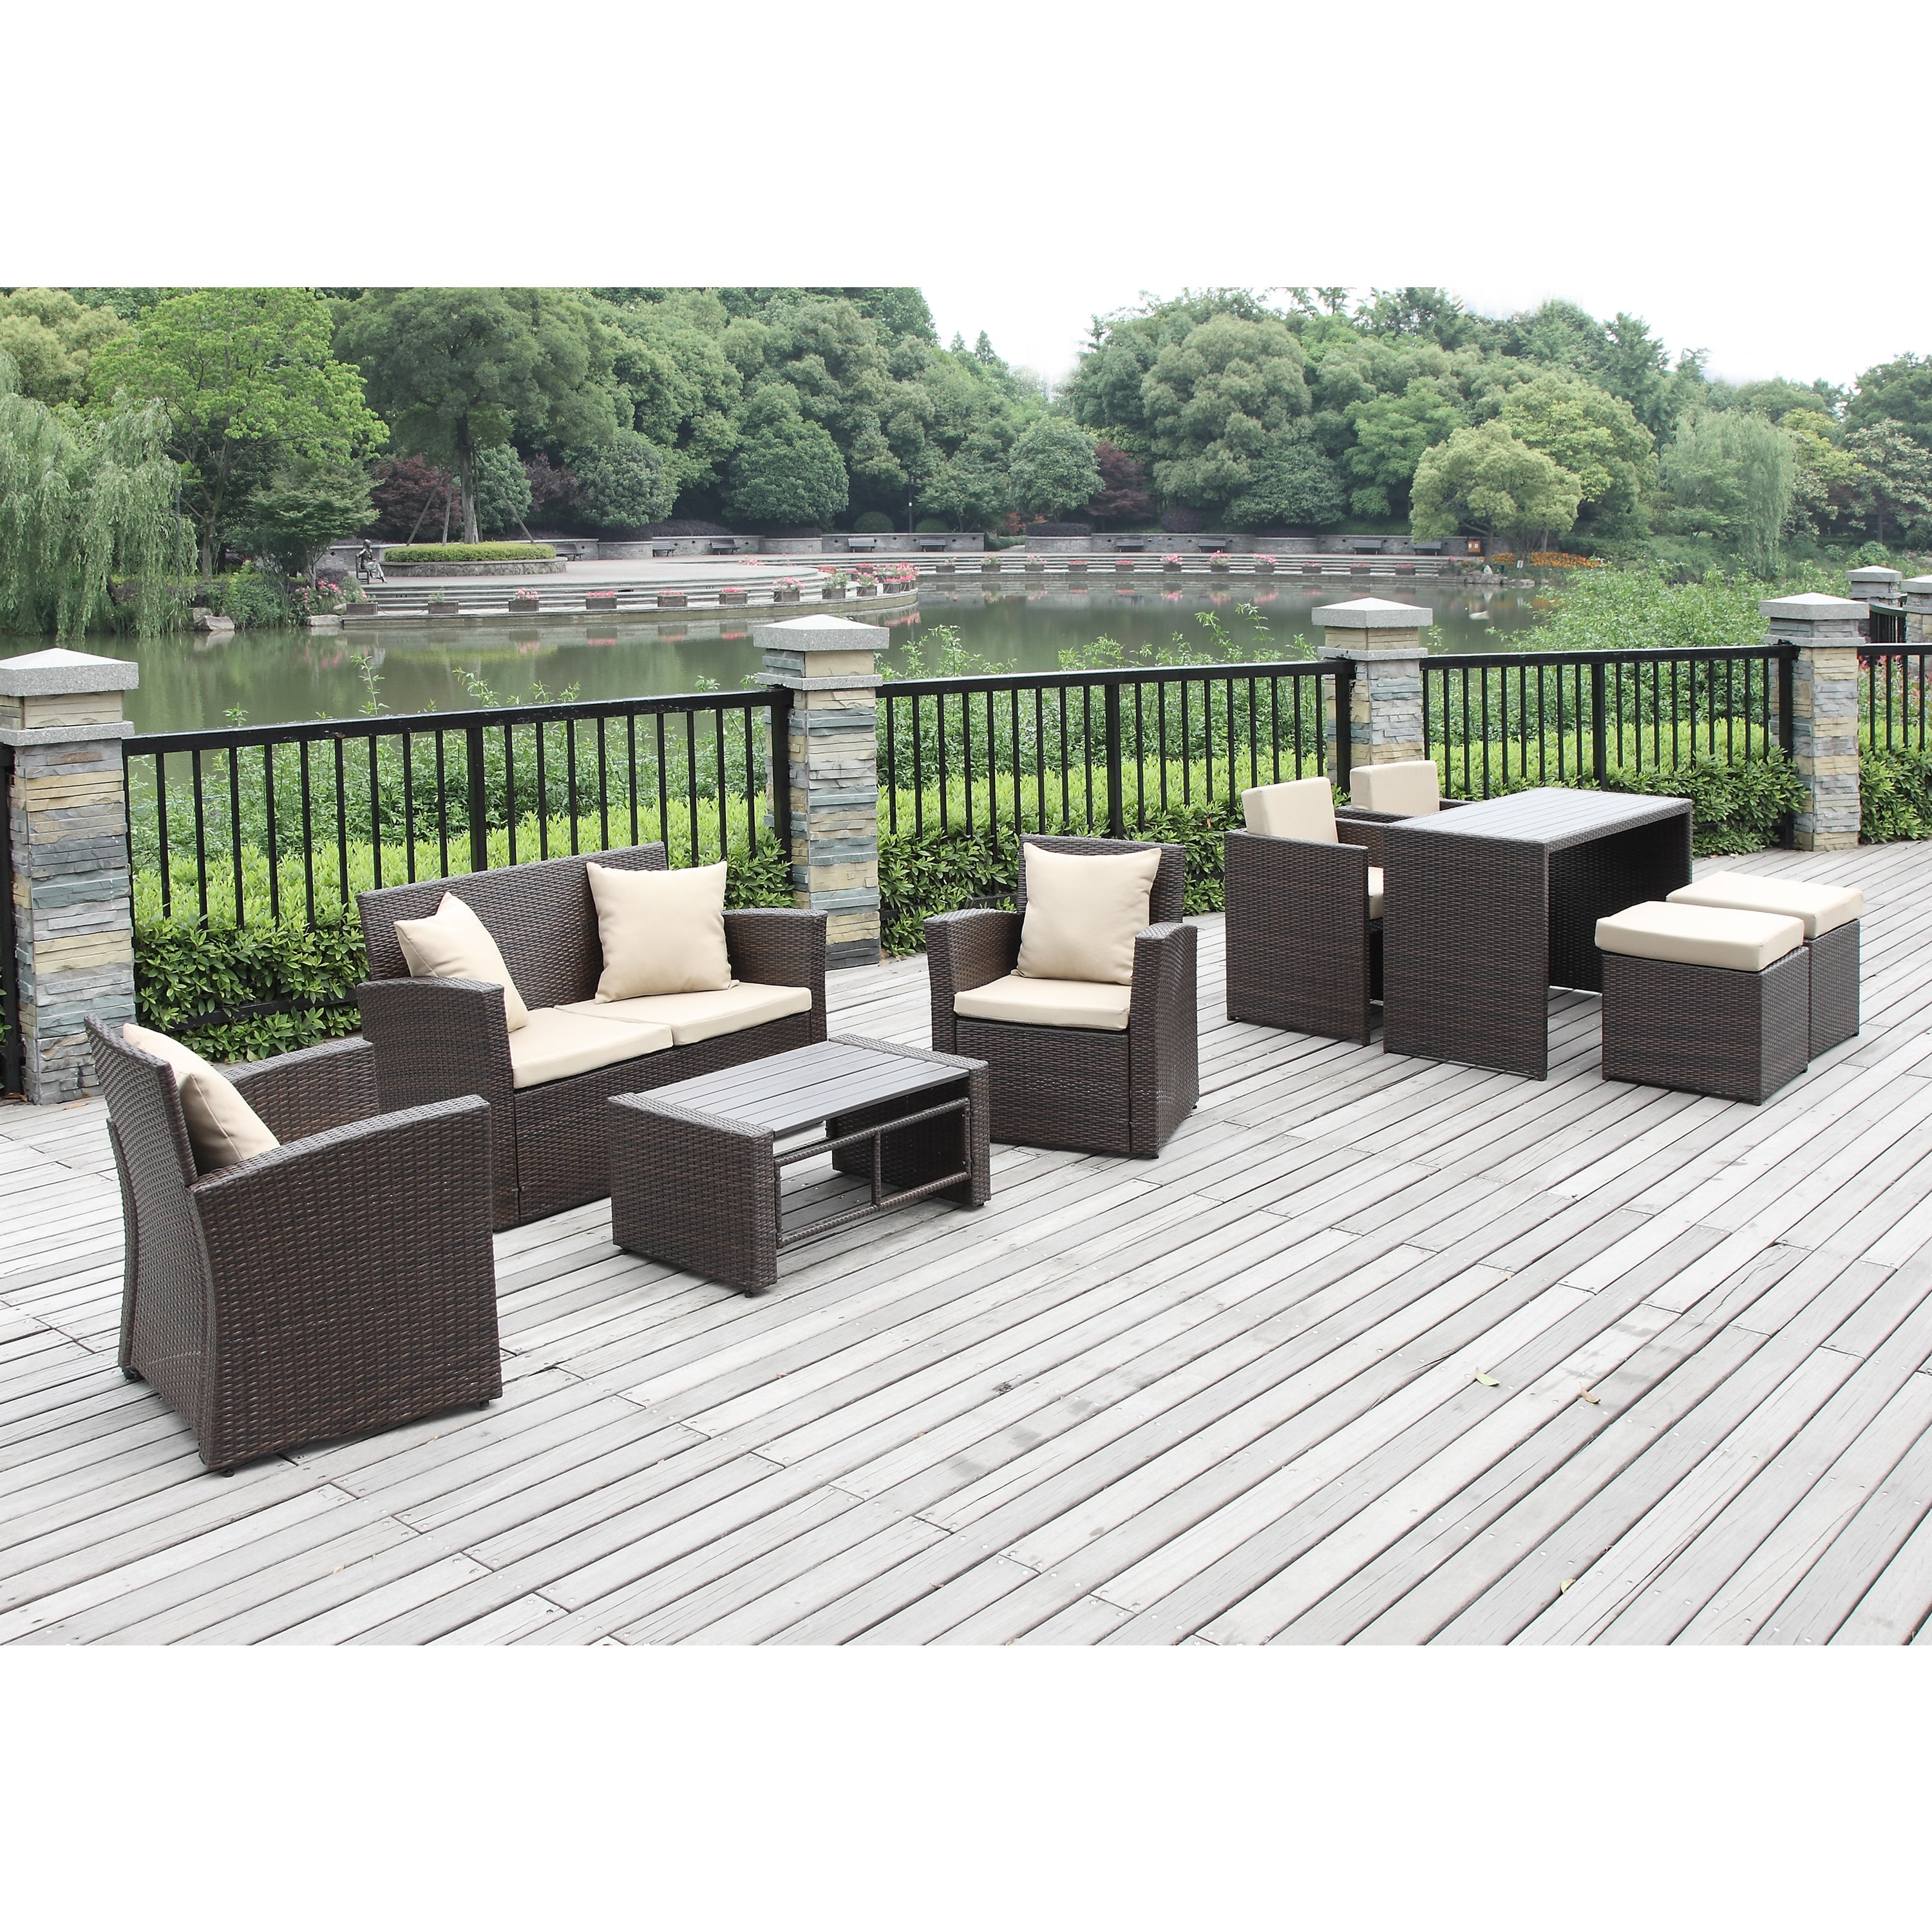 patio furniture set conversation dining table lounge 9 piece deck